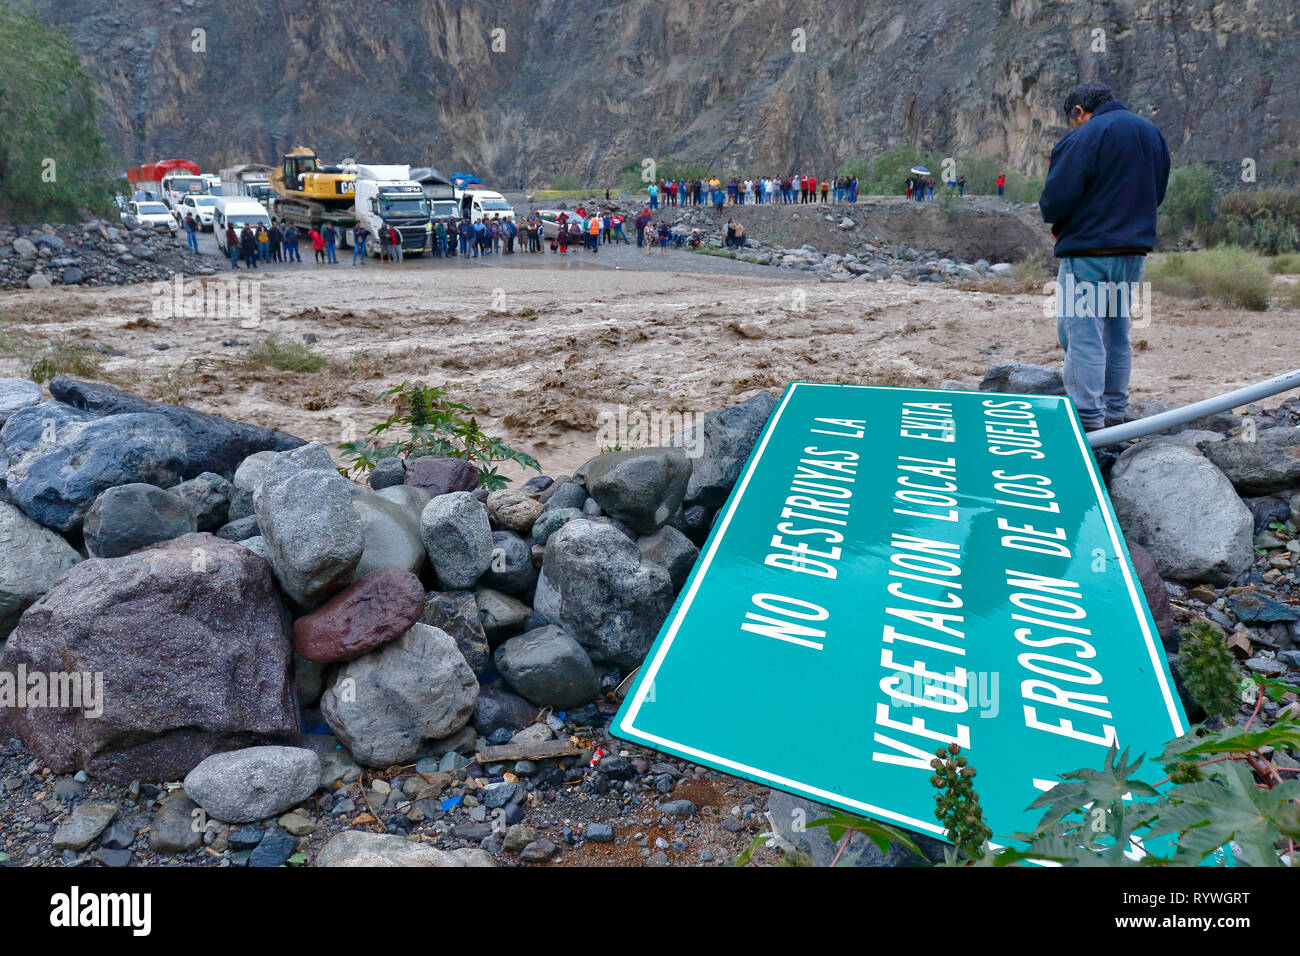 Churin, Lima. February 13, 2019 - alluvium occurred on the road from Lima to Churin, this natural disaster prevented the passage leaving affected many - Stock Image